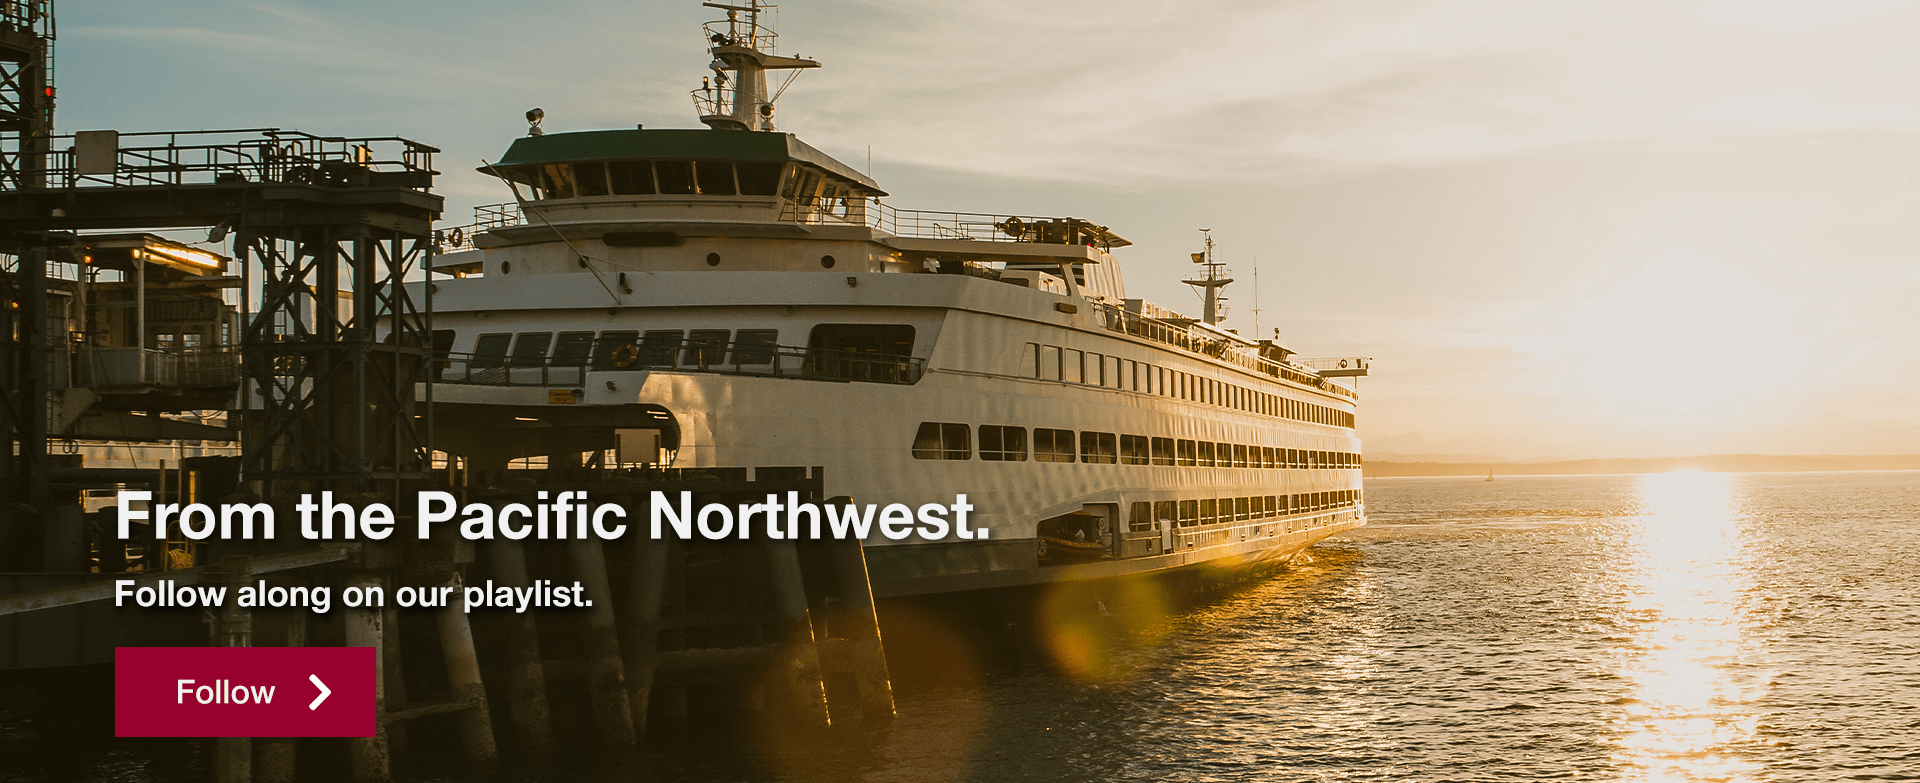 From the Pacific Northwest. Follow along on our playlist.